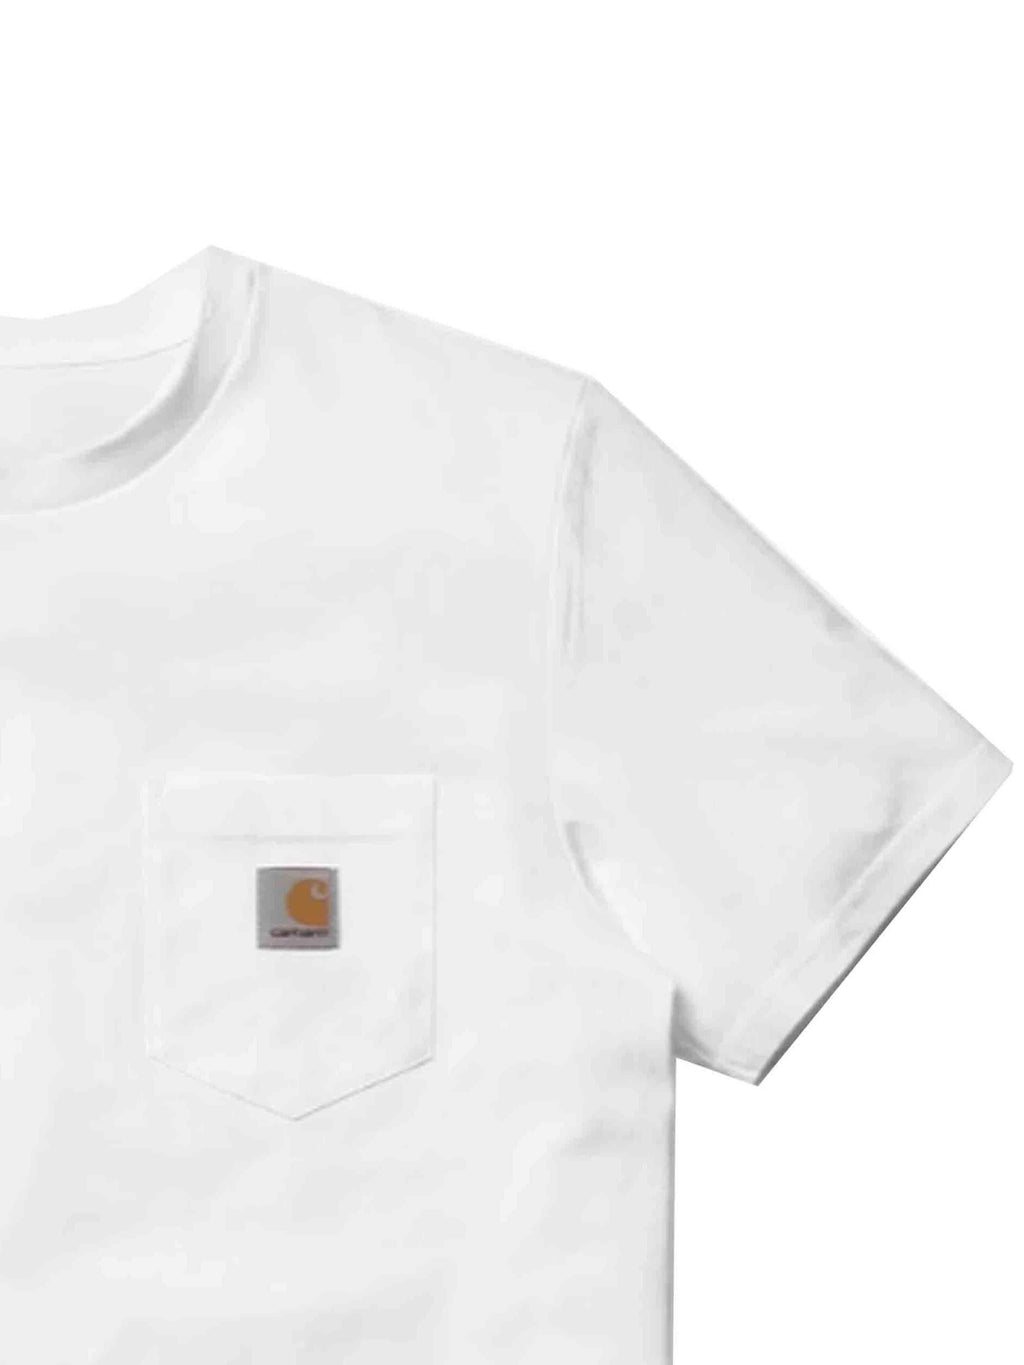 Carhartt Pocket Tee White - PRIOR